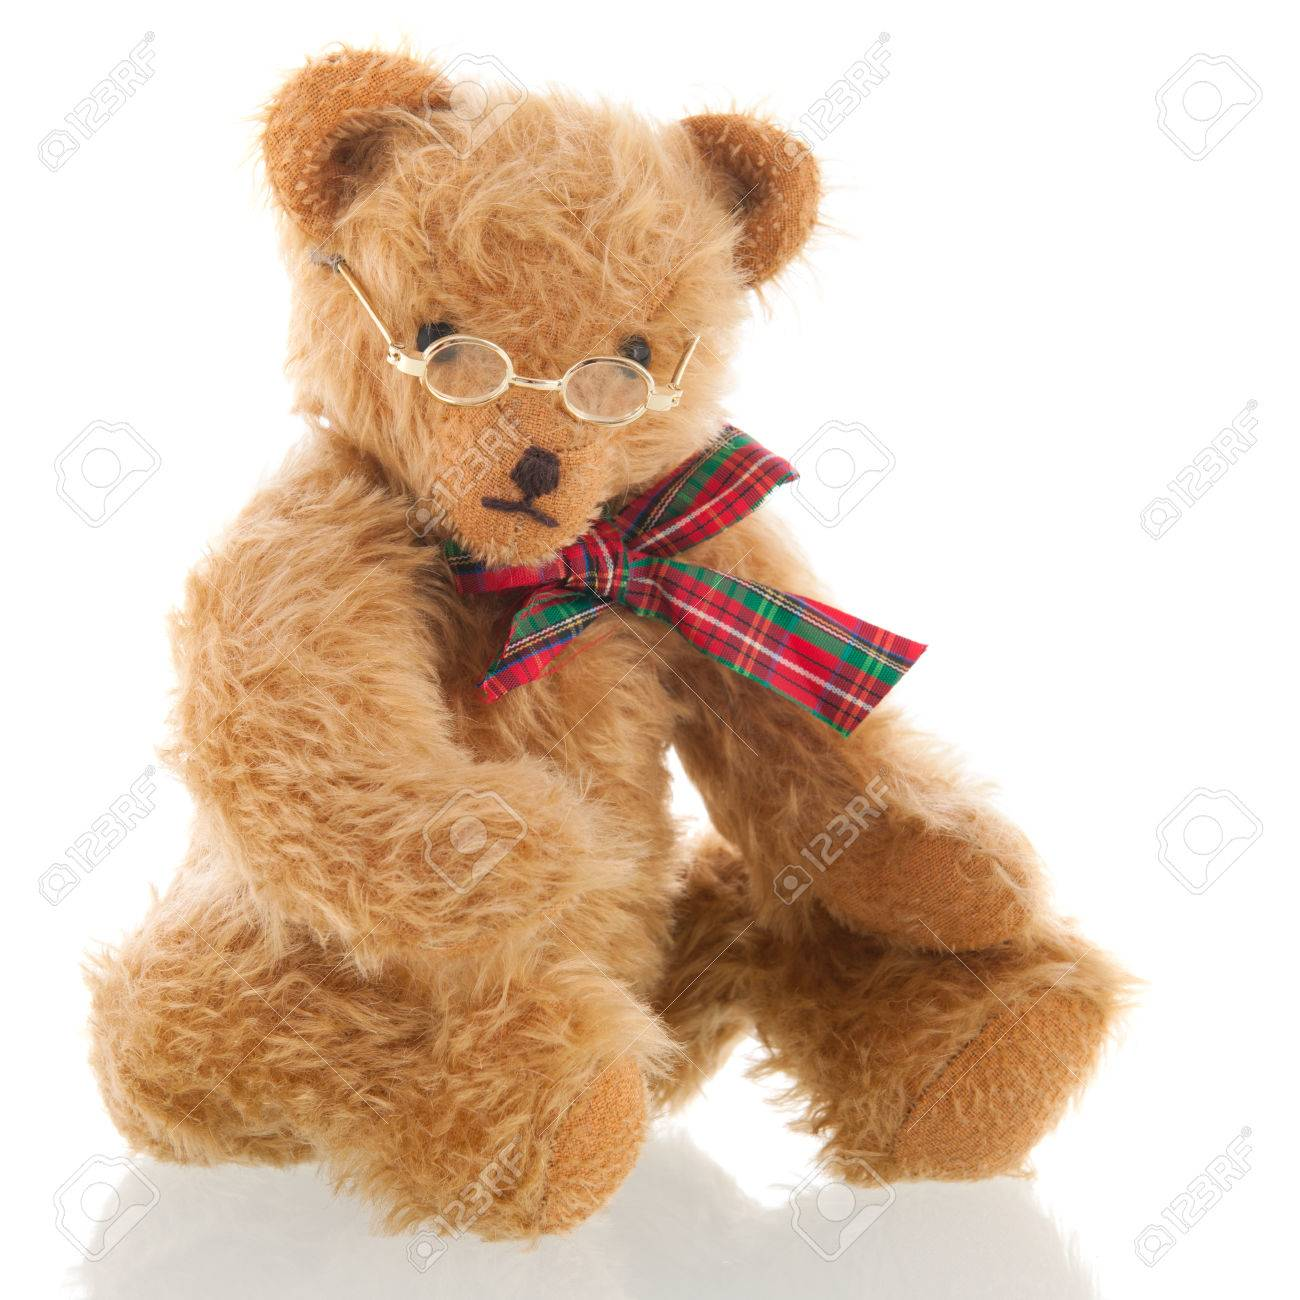 f31f23b1a94 Stock Photo - Stuffed intelligent bear with glasses isolated over white  background